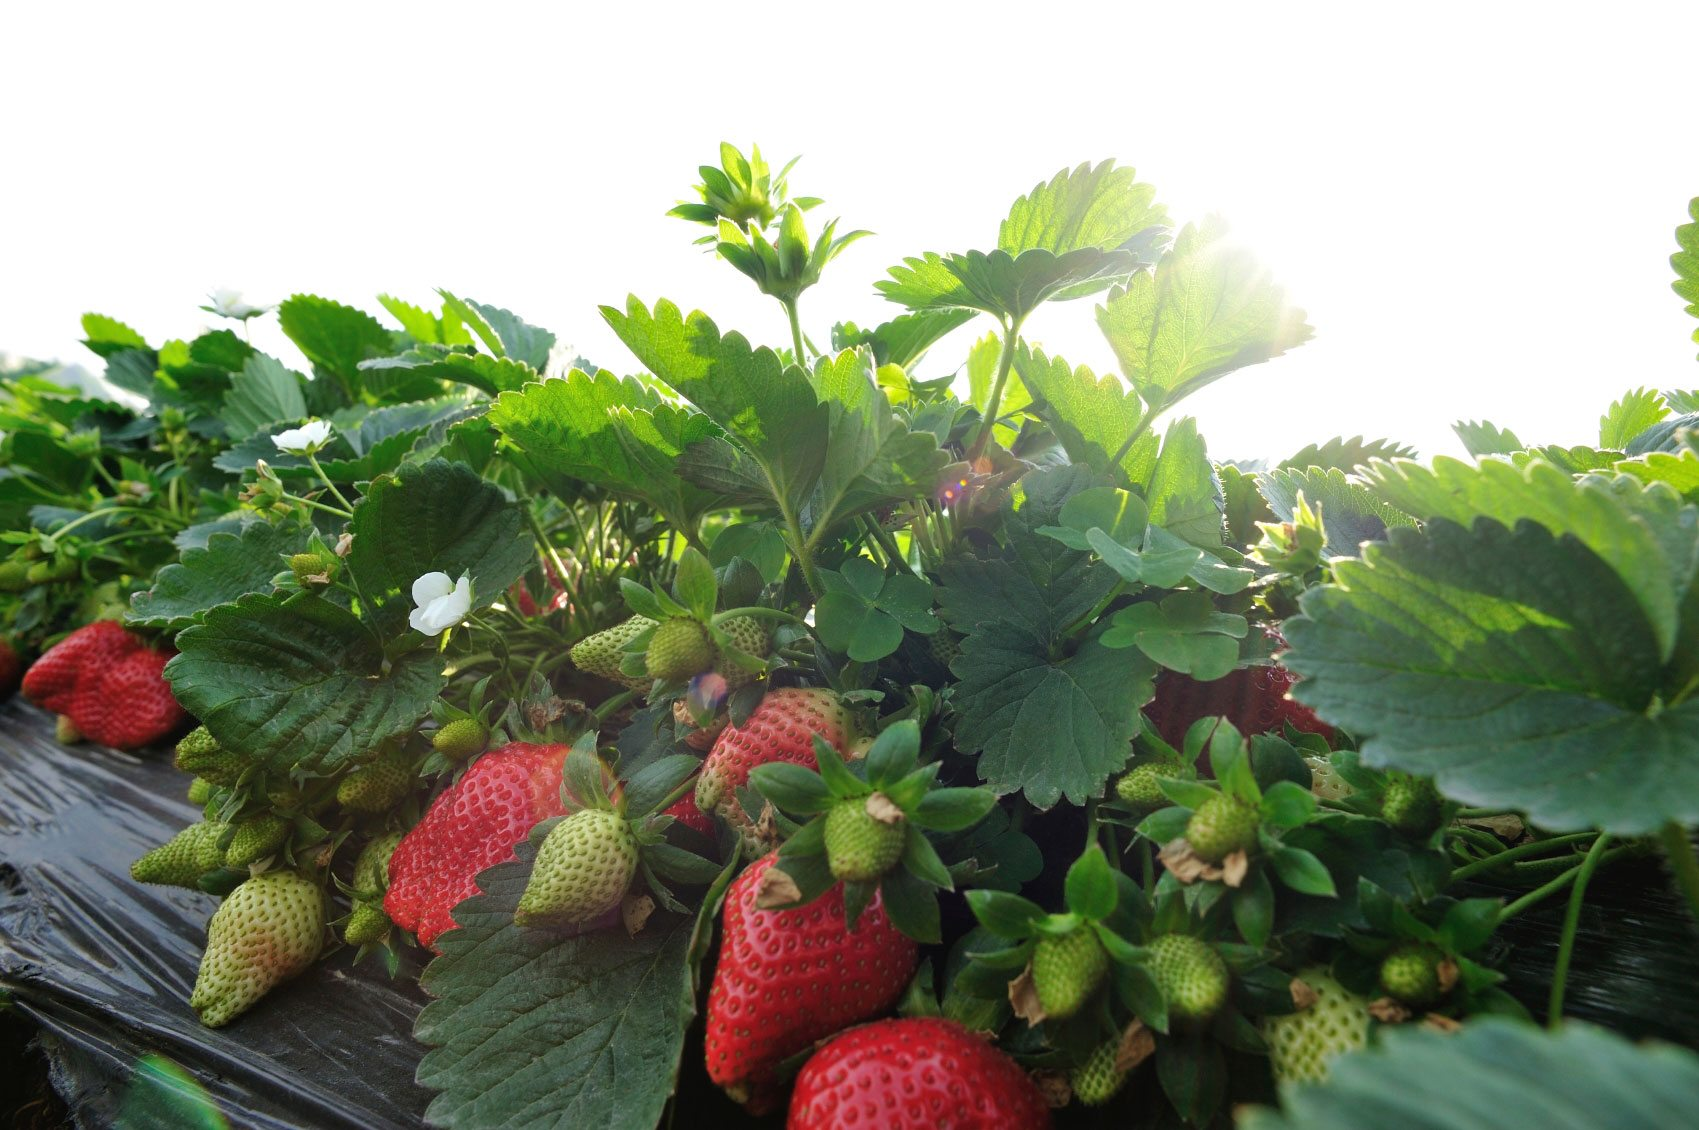 Caring For Strawberries In Hot